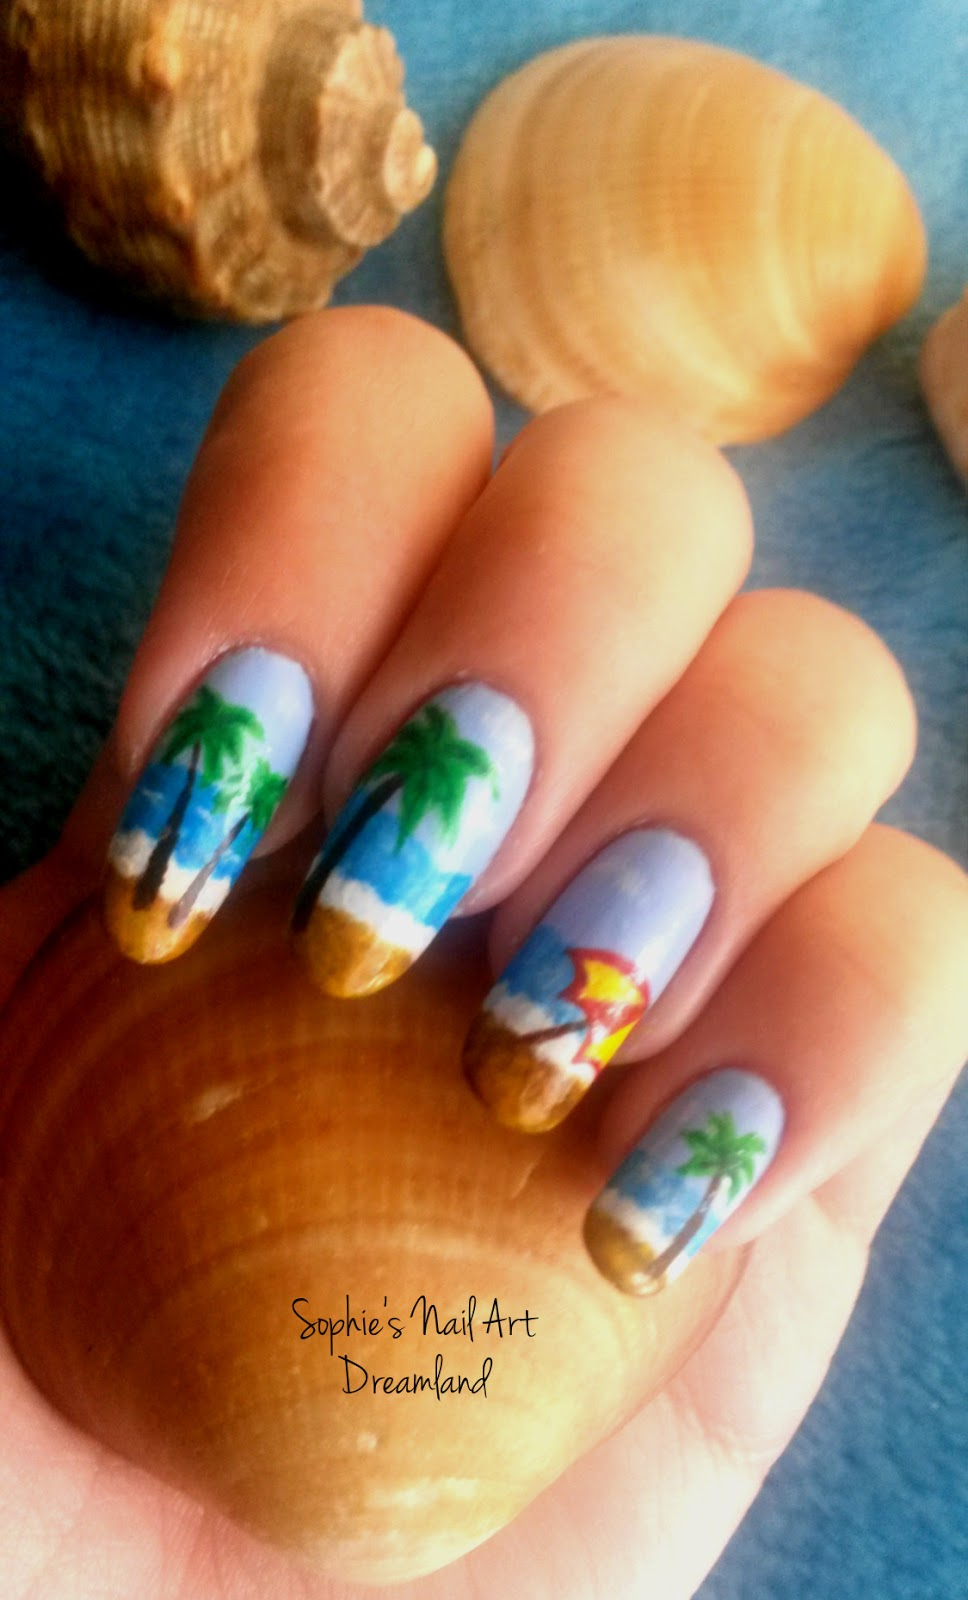 Nail art marathon 2015 4 palm trees sophies nail art dreamland for this manicure i used moyra bubble gum 628 jelly bean as a base color and painted everything with acrylic colors i really enjoyed painting the palm prinsesfo Image collections